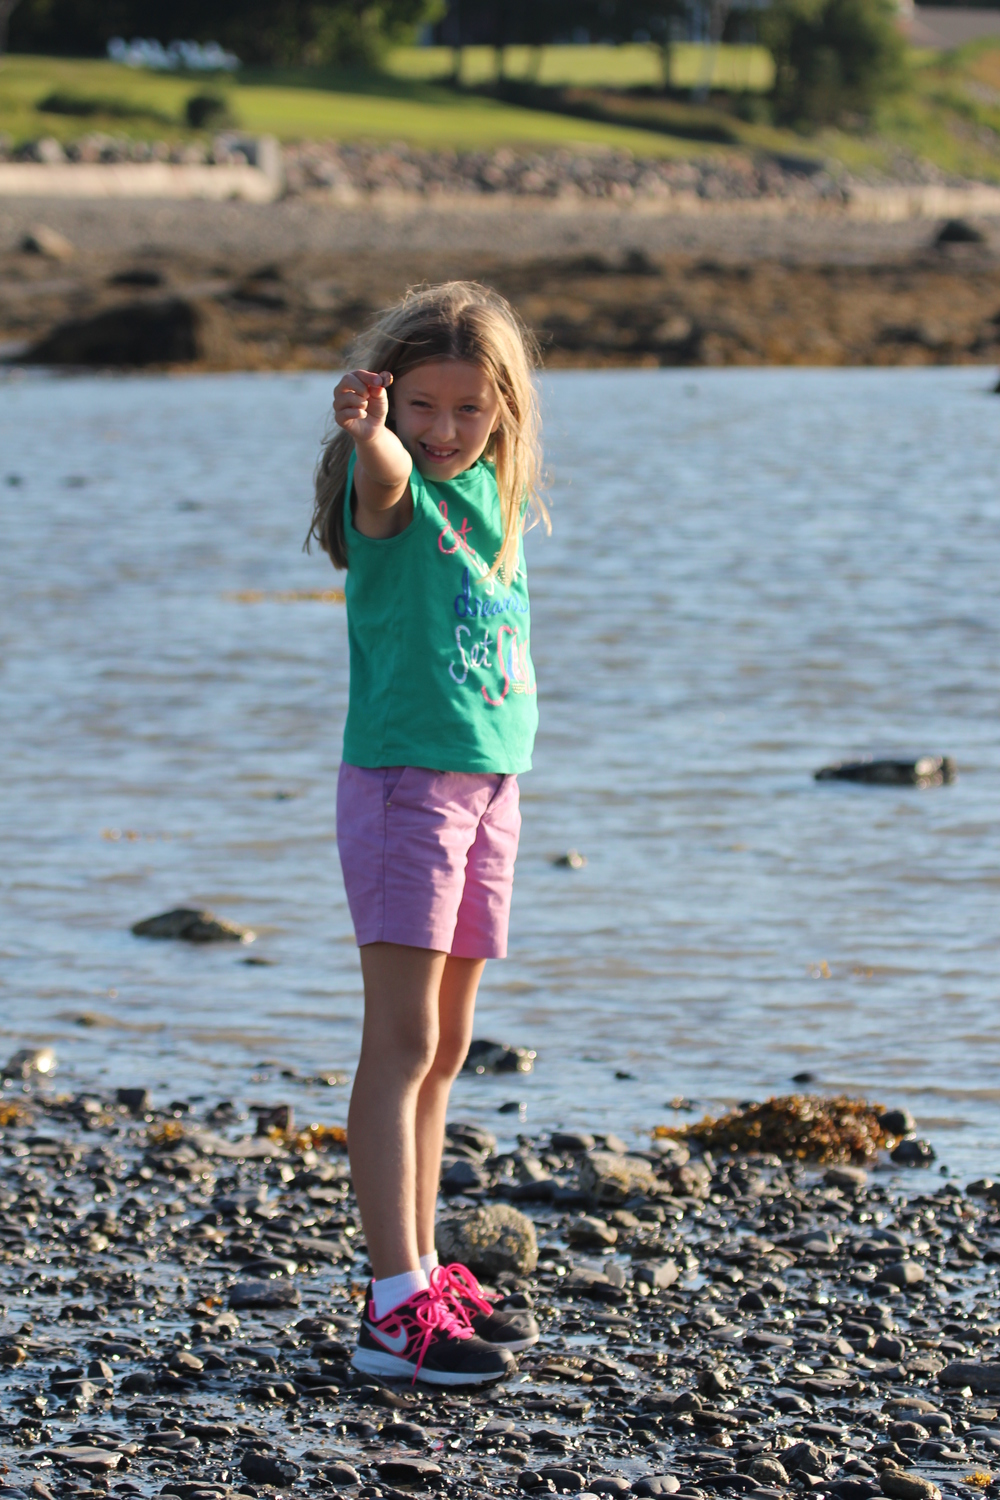 Showing off the great skipping rock she found to put her new found knowledge to the test.